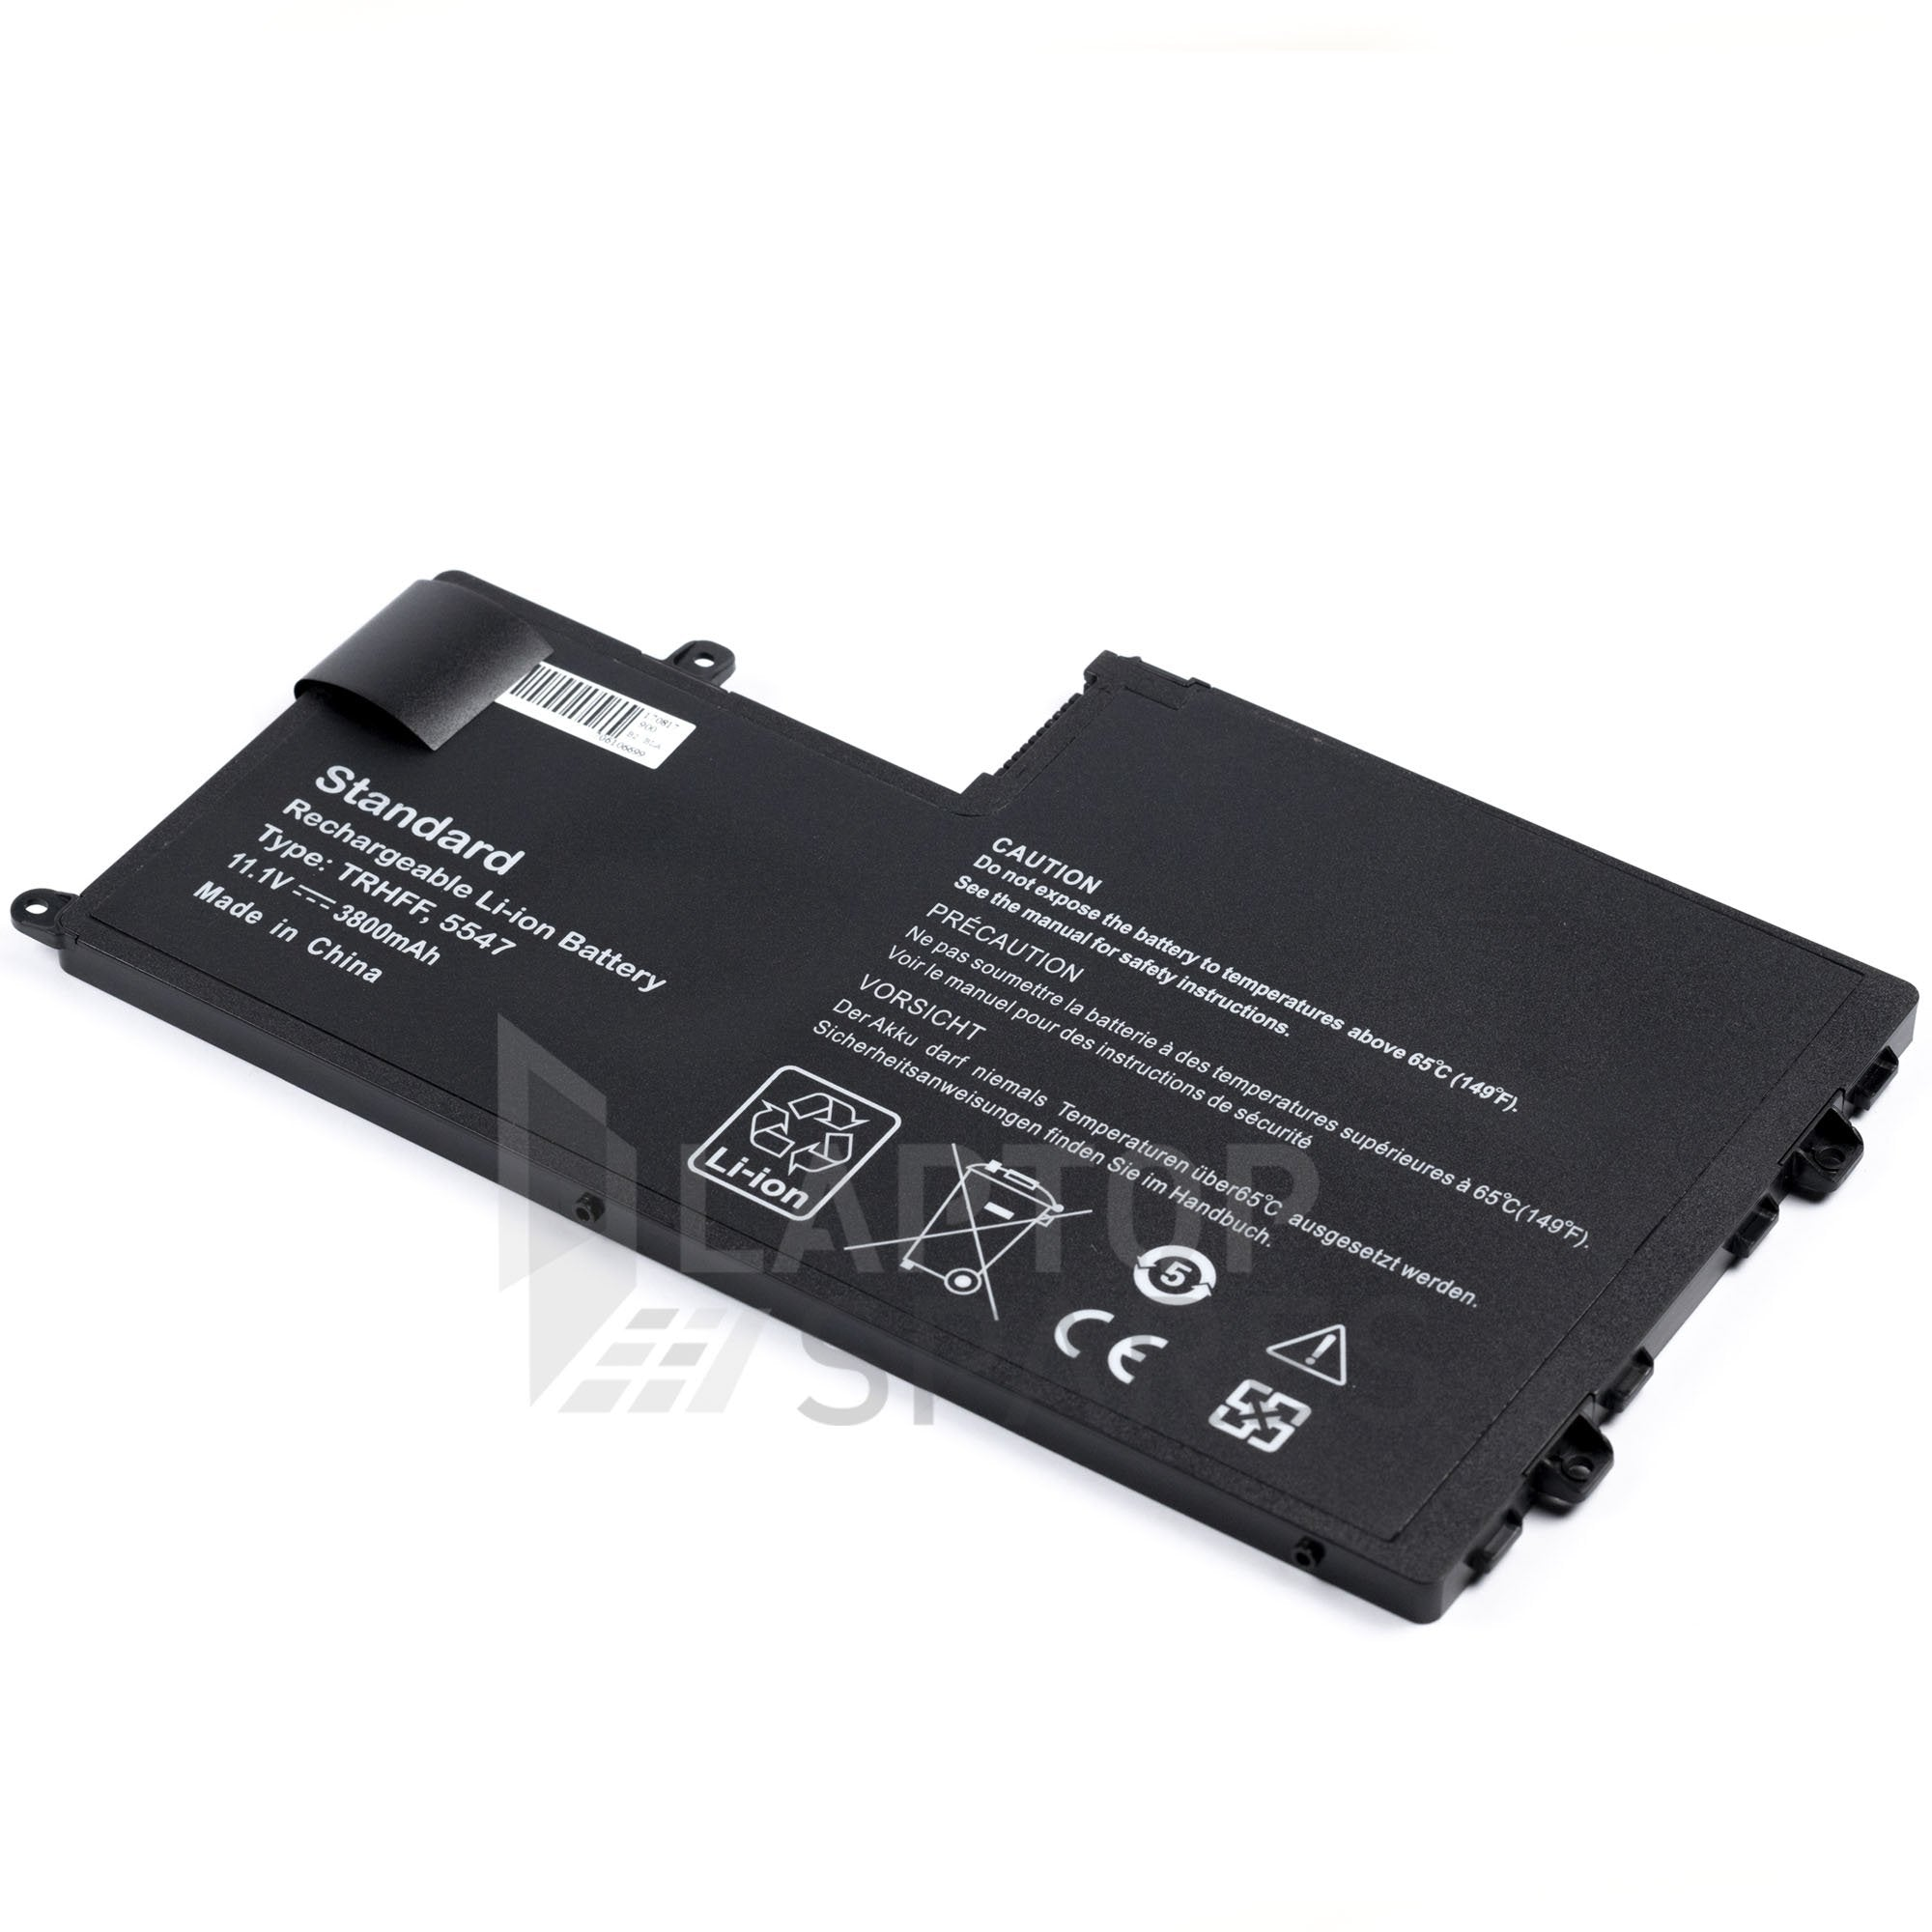 Dell 1V2F6 1WWHW 58DP4 3800mAh 3 Cell Battery